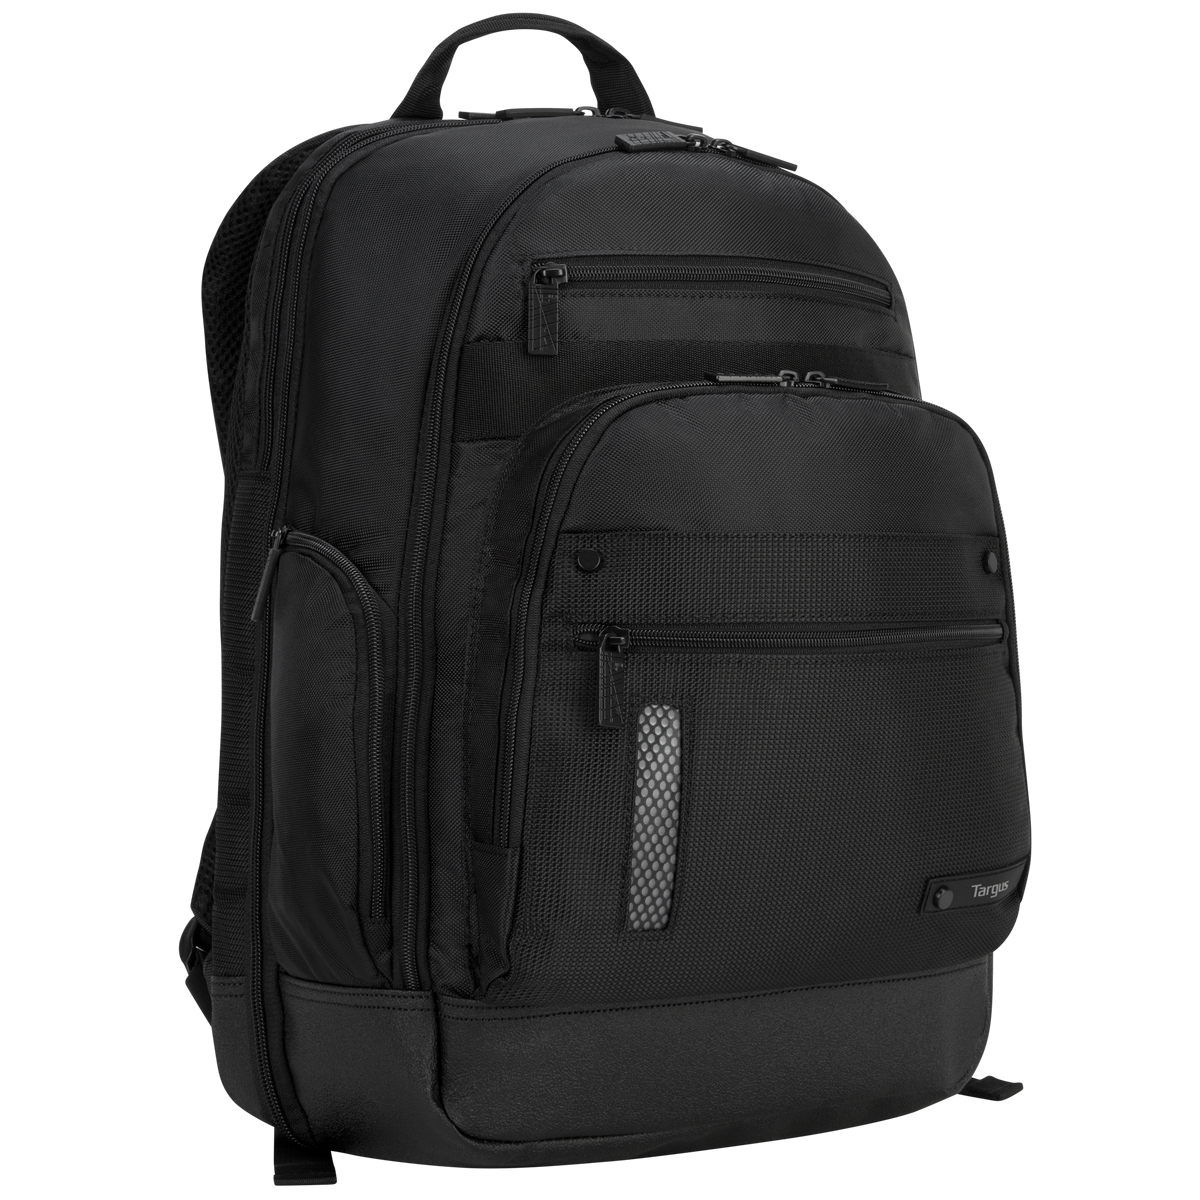 Shop for Hiking Backpacks at REI - FREE SHIPPING With $50 minimum purchase. Top quality, great selection and expert advice you can trust. % Satisfaction Guarantee. Black Diamond (1) add filter: Black Diamond. 1 results. CamelBak (20) add filter: CamelBak. 20 results.